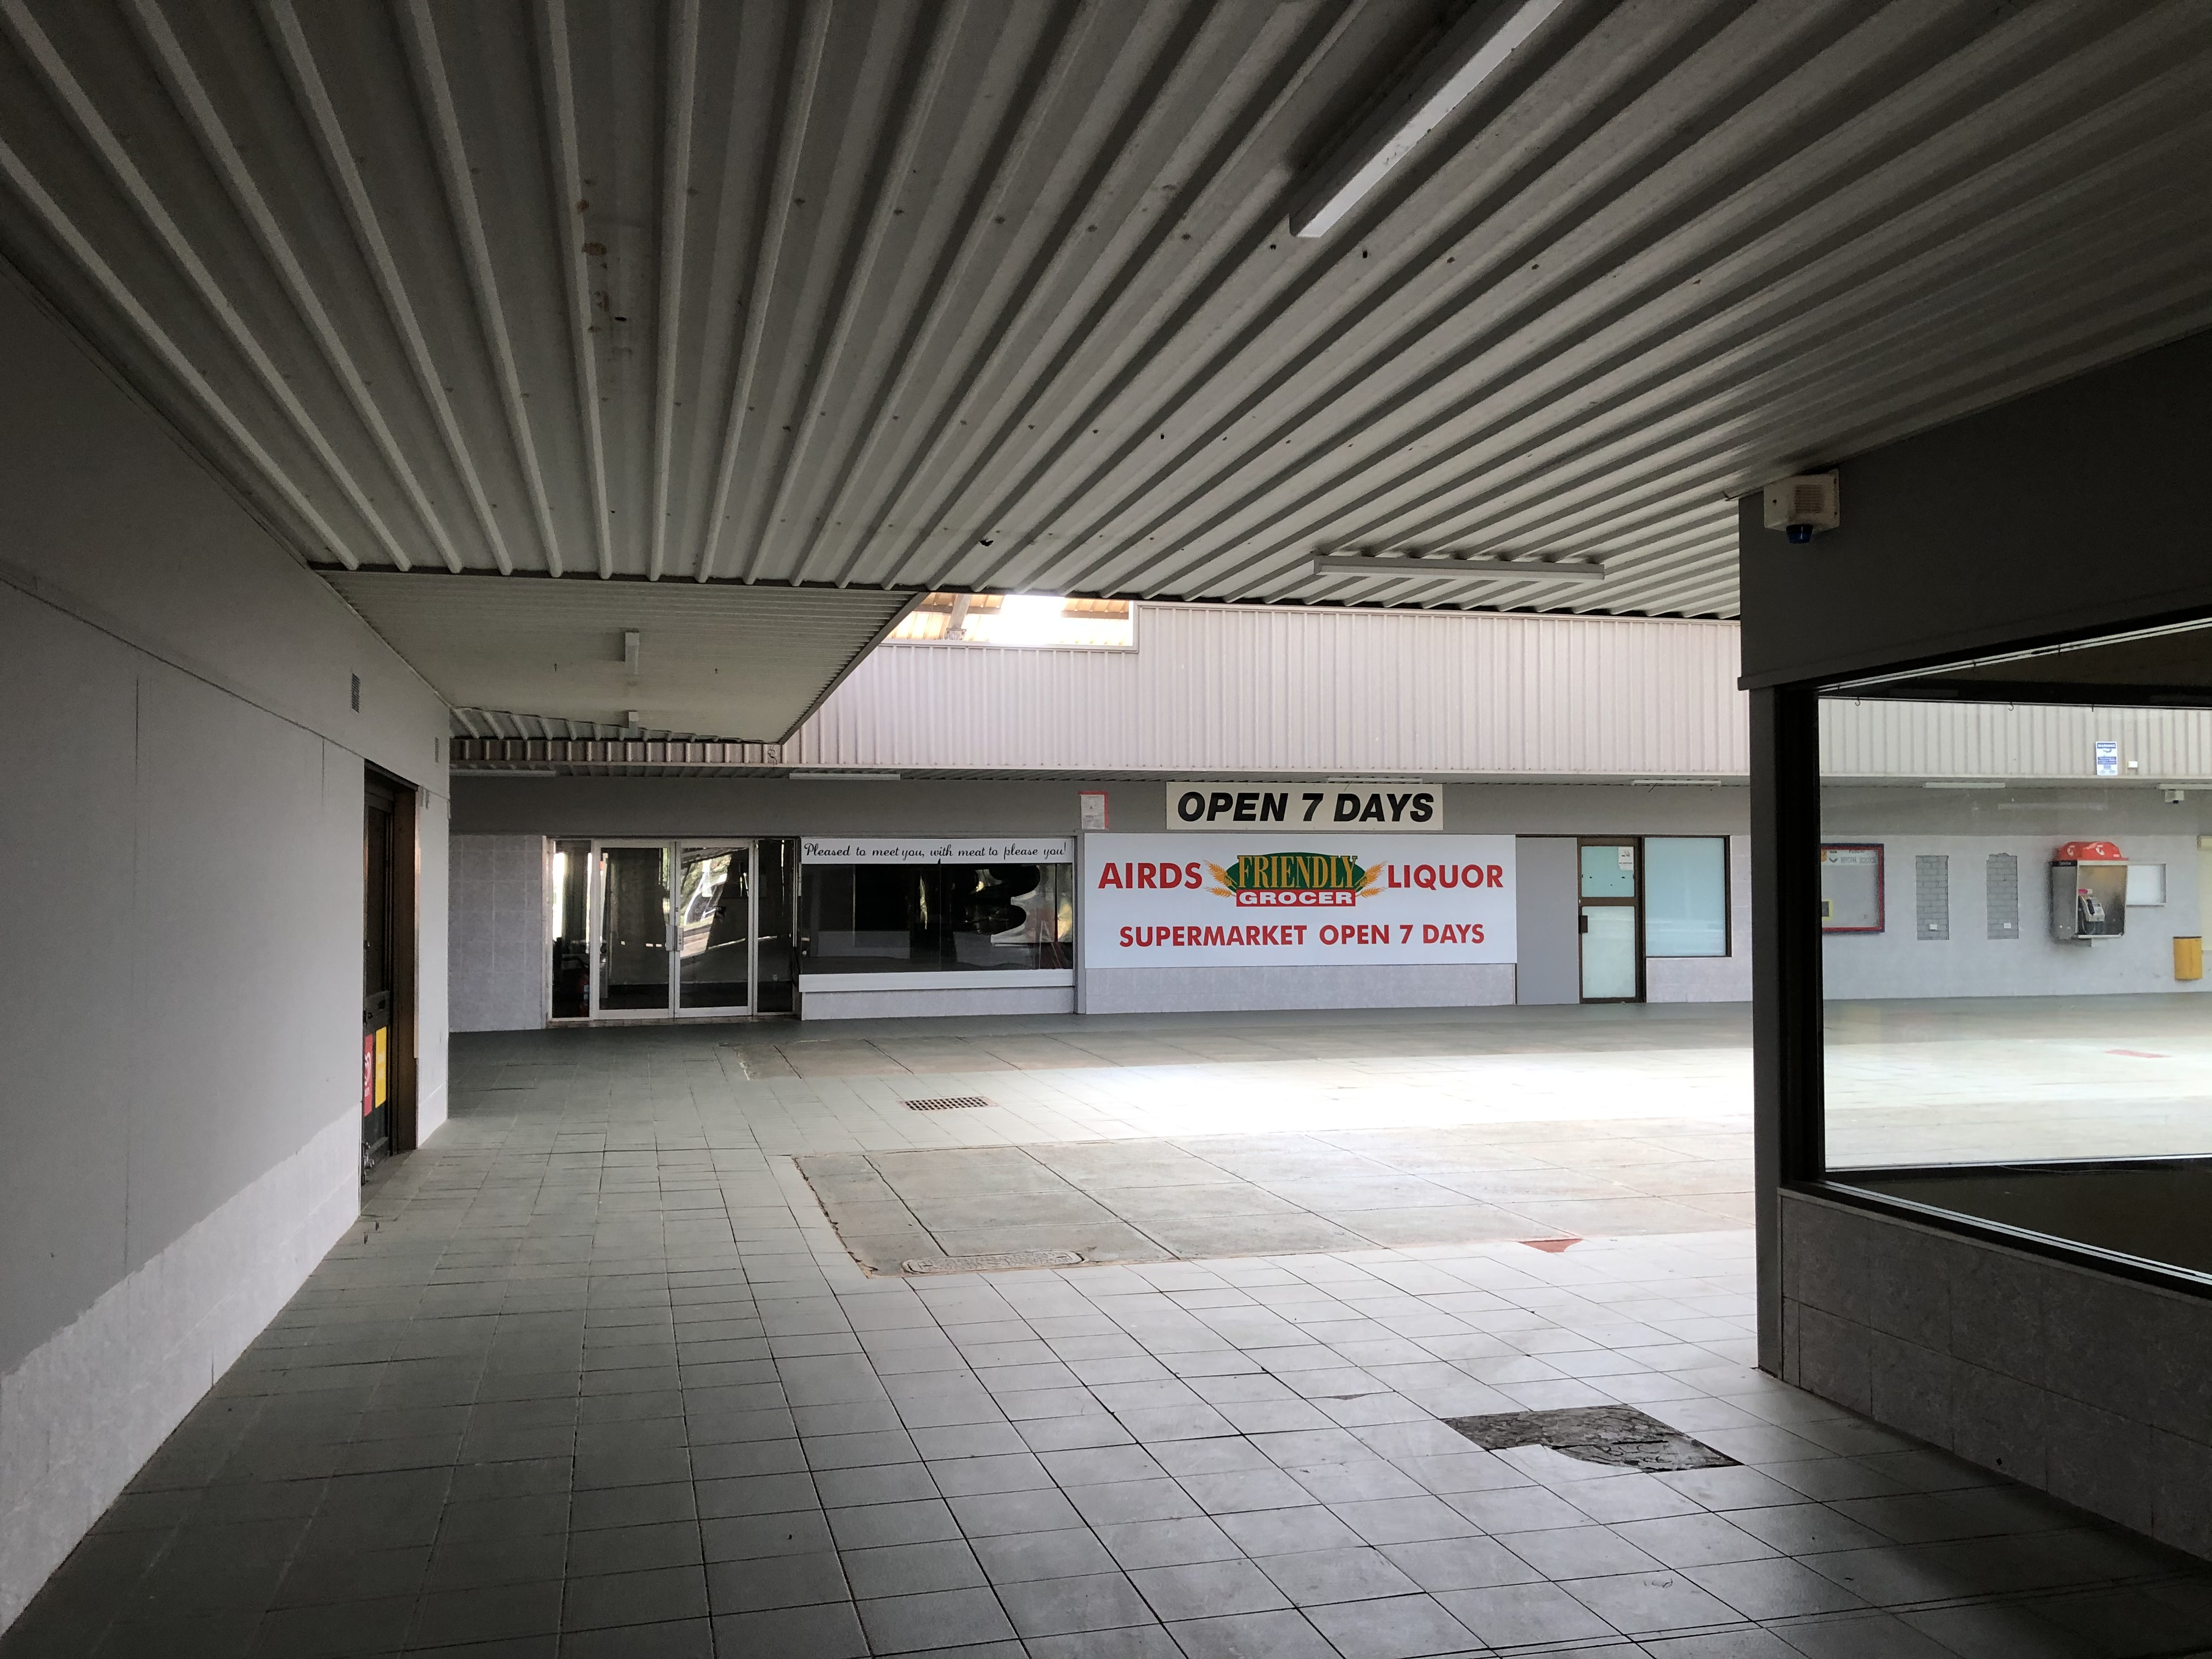 Airds Shopping Centre Interior Signage 2020 IW lowres